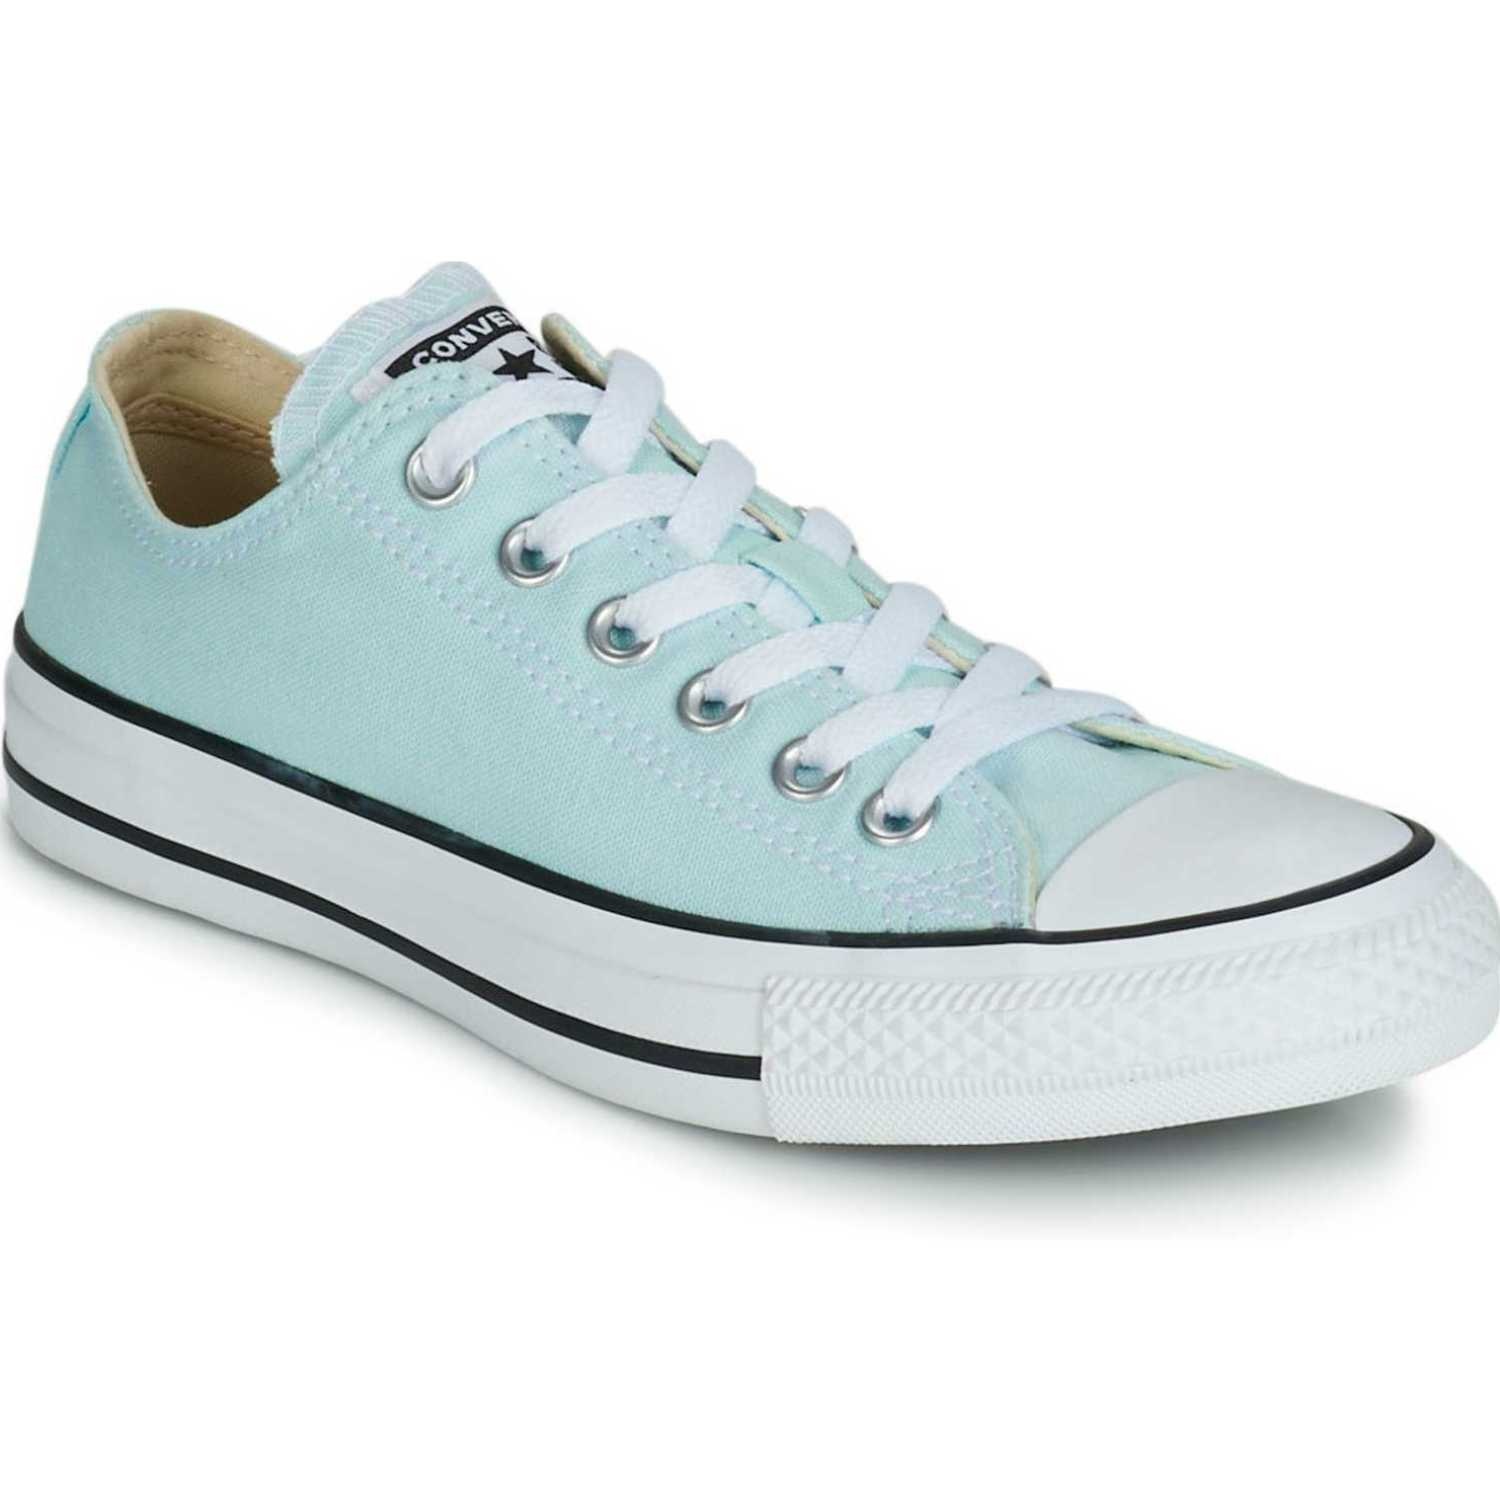 Converse chuck taylor all star seasonal ox Celeste Walking